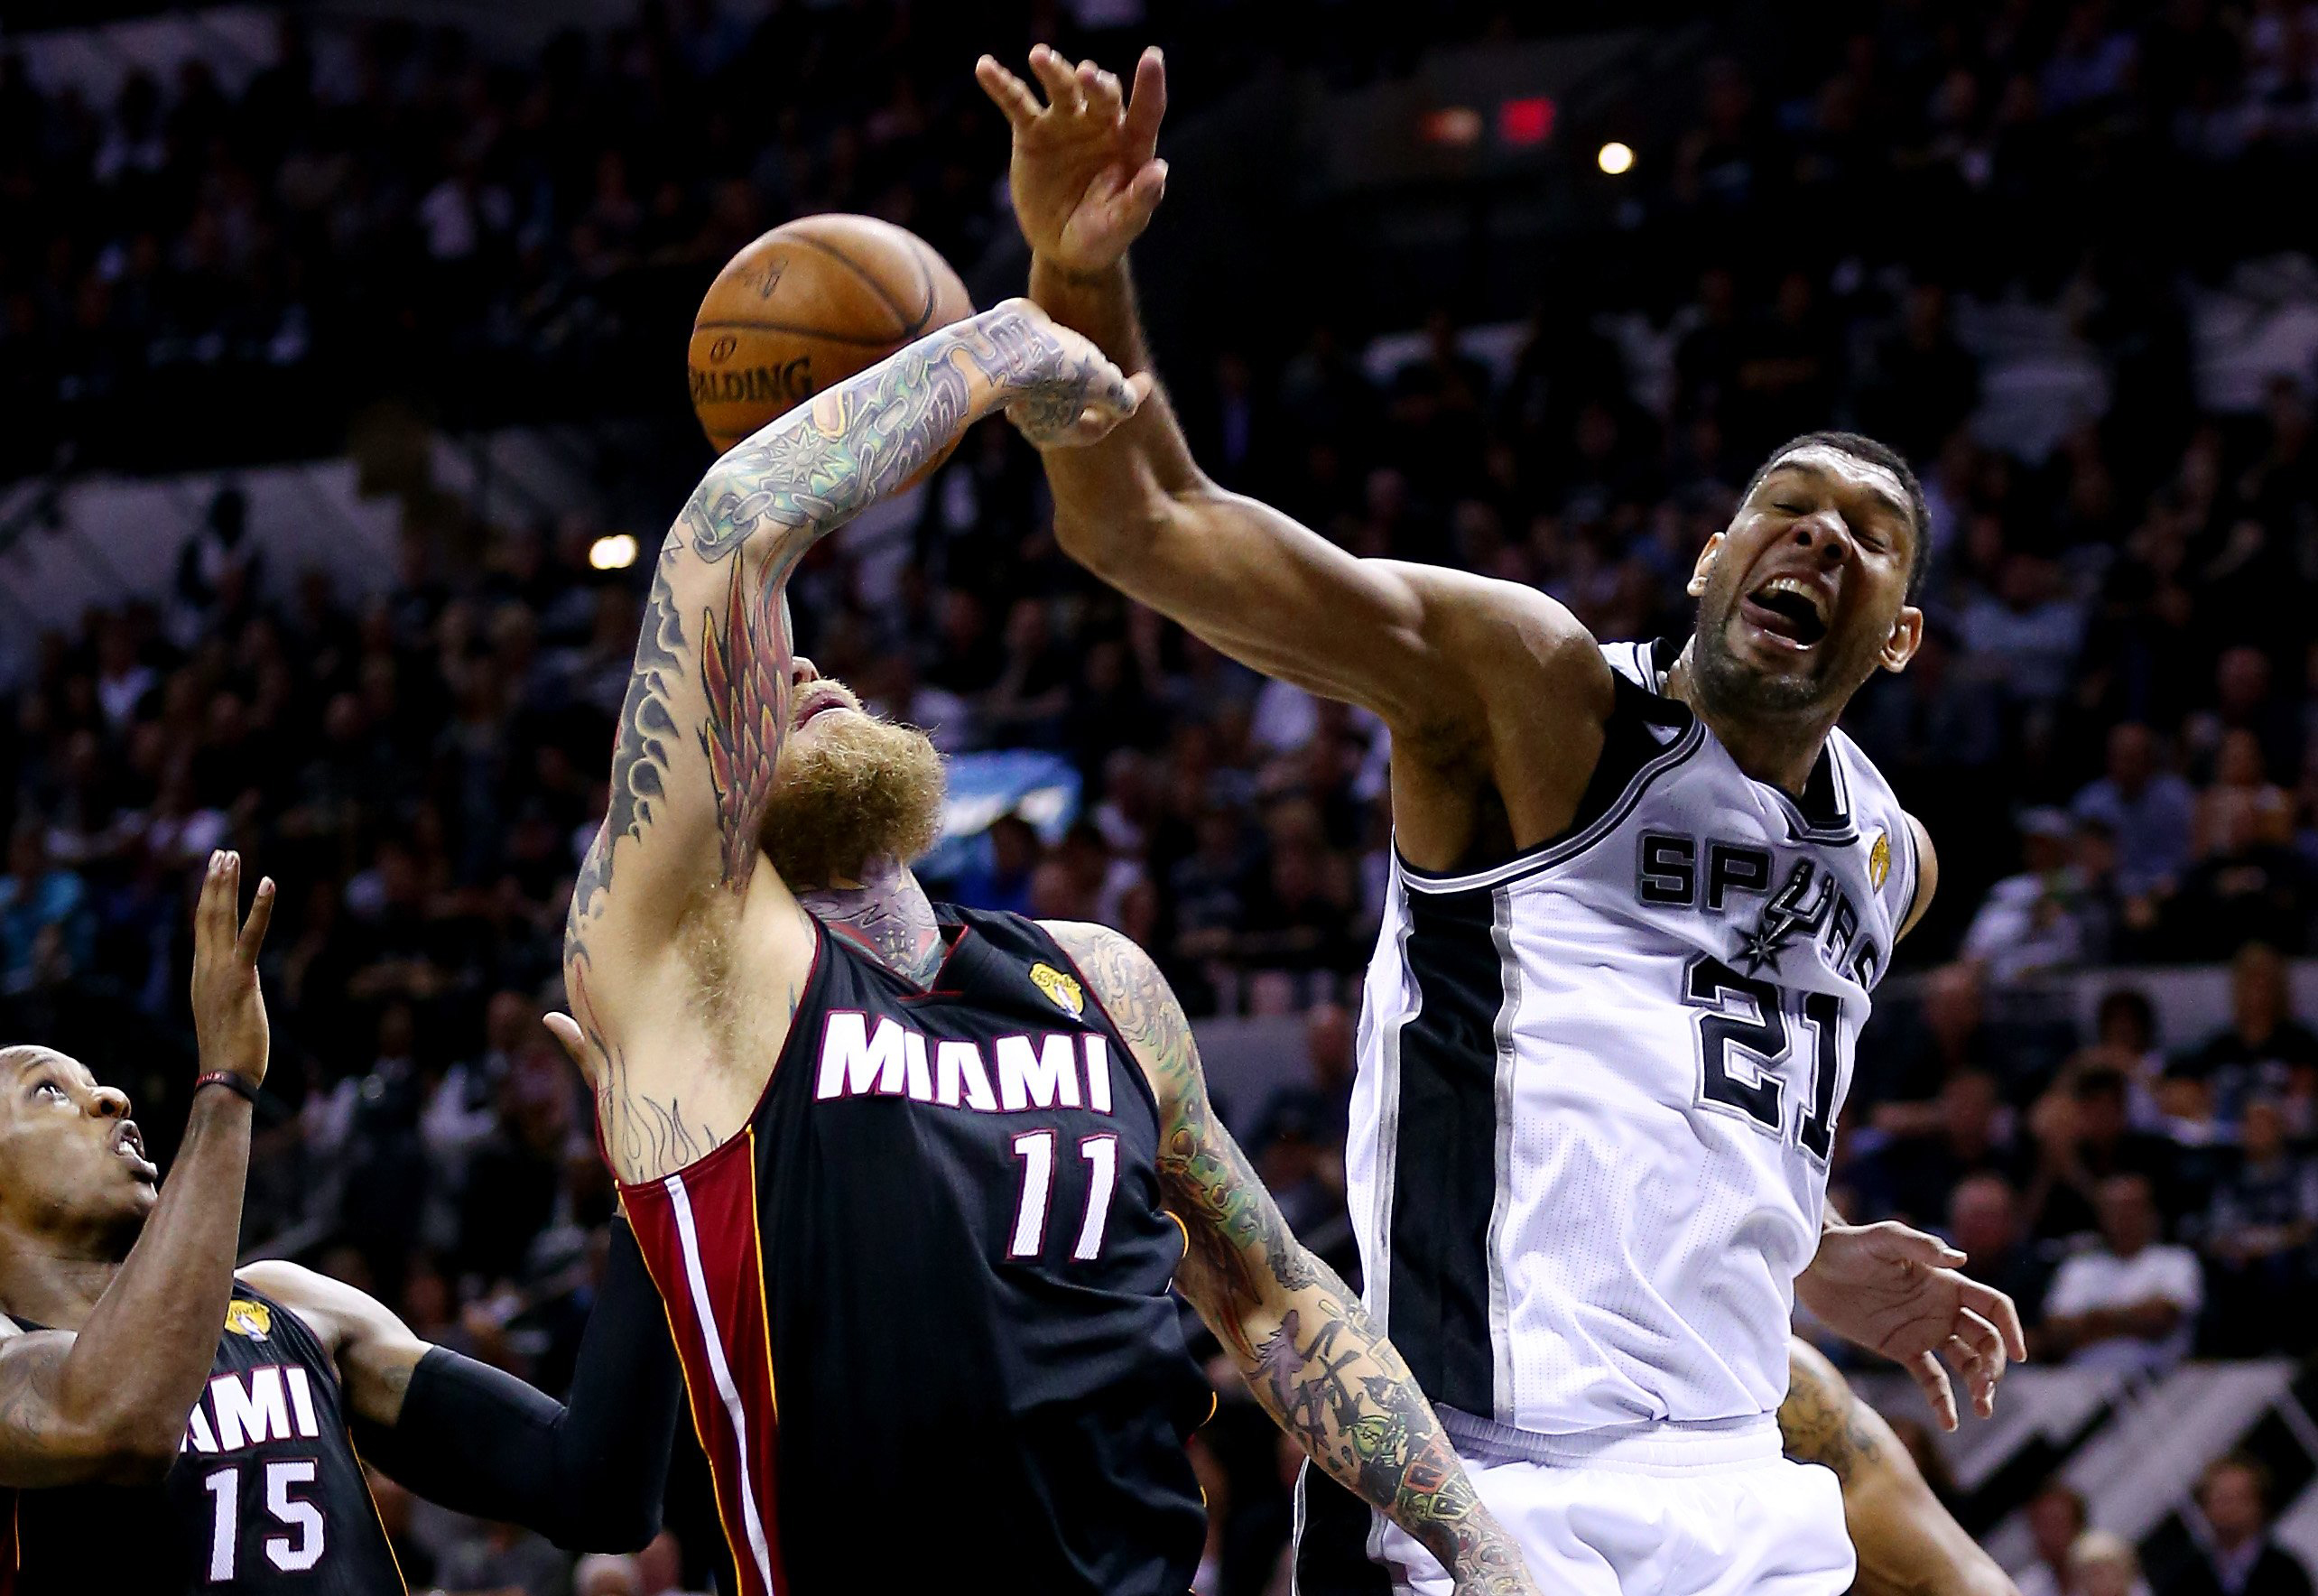 Tim Duncan #21 of the San Antonio Spurs battles for a rebound against Chris Andersen #11 of the Miami Heat during Game 2 of the 2014 NBA Finals in San Antonio on June 8, 2014.